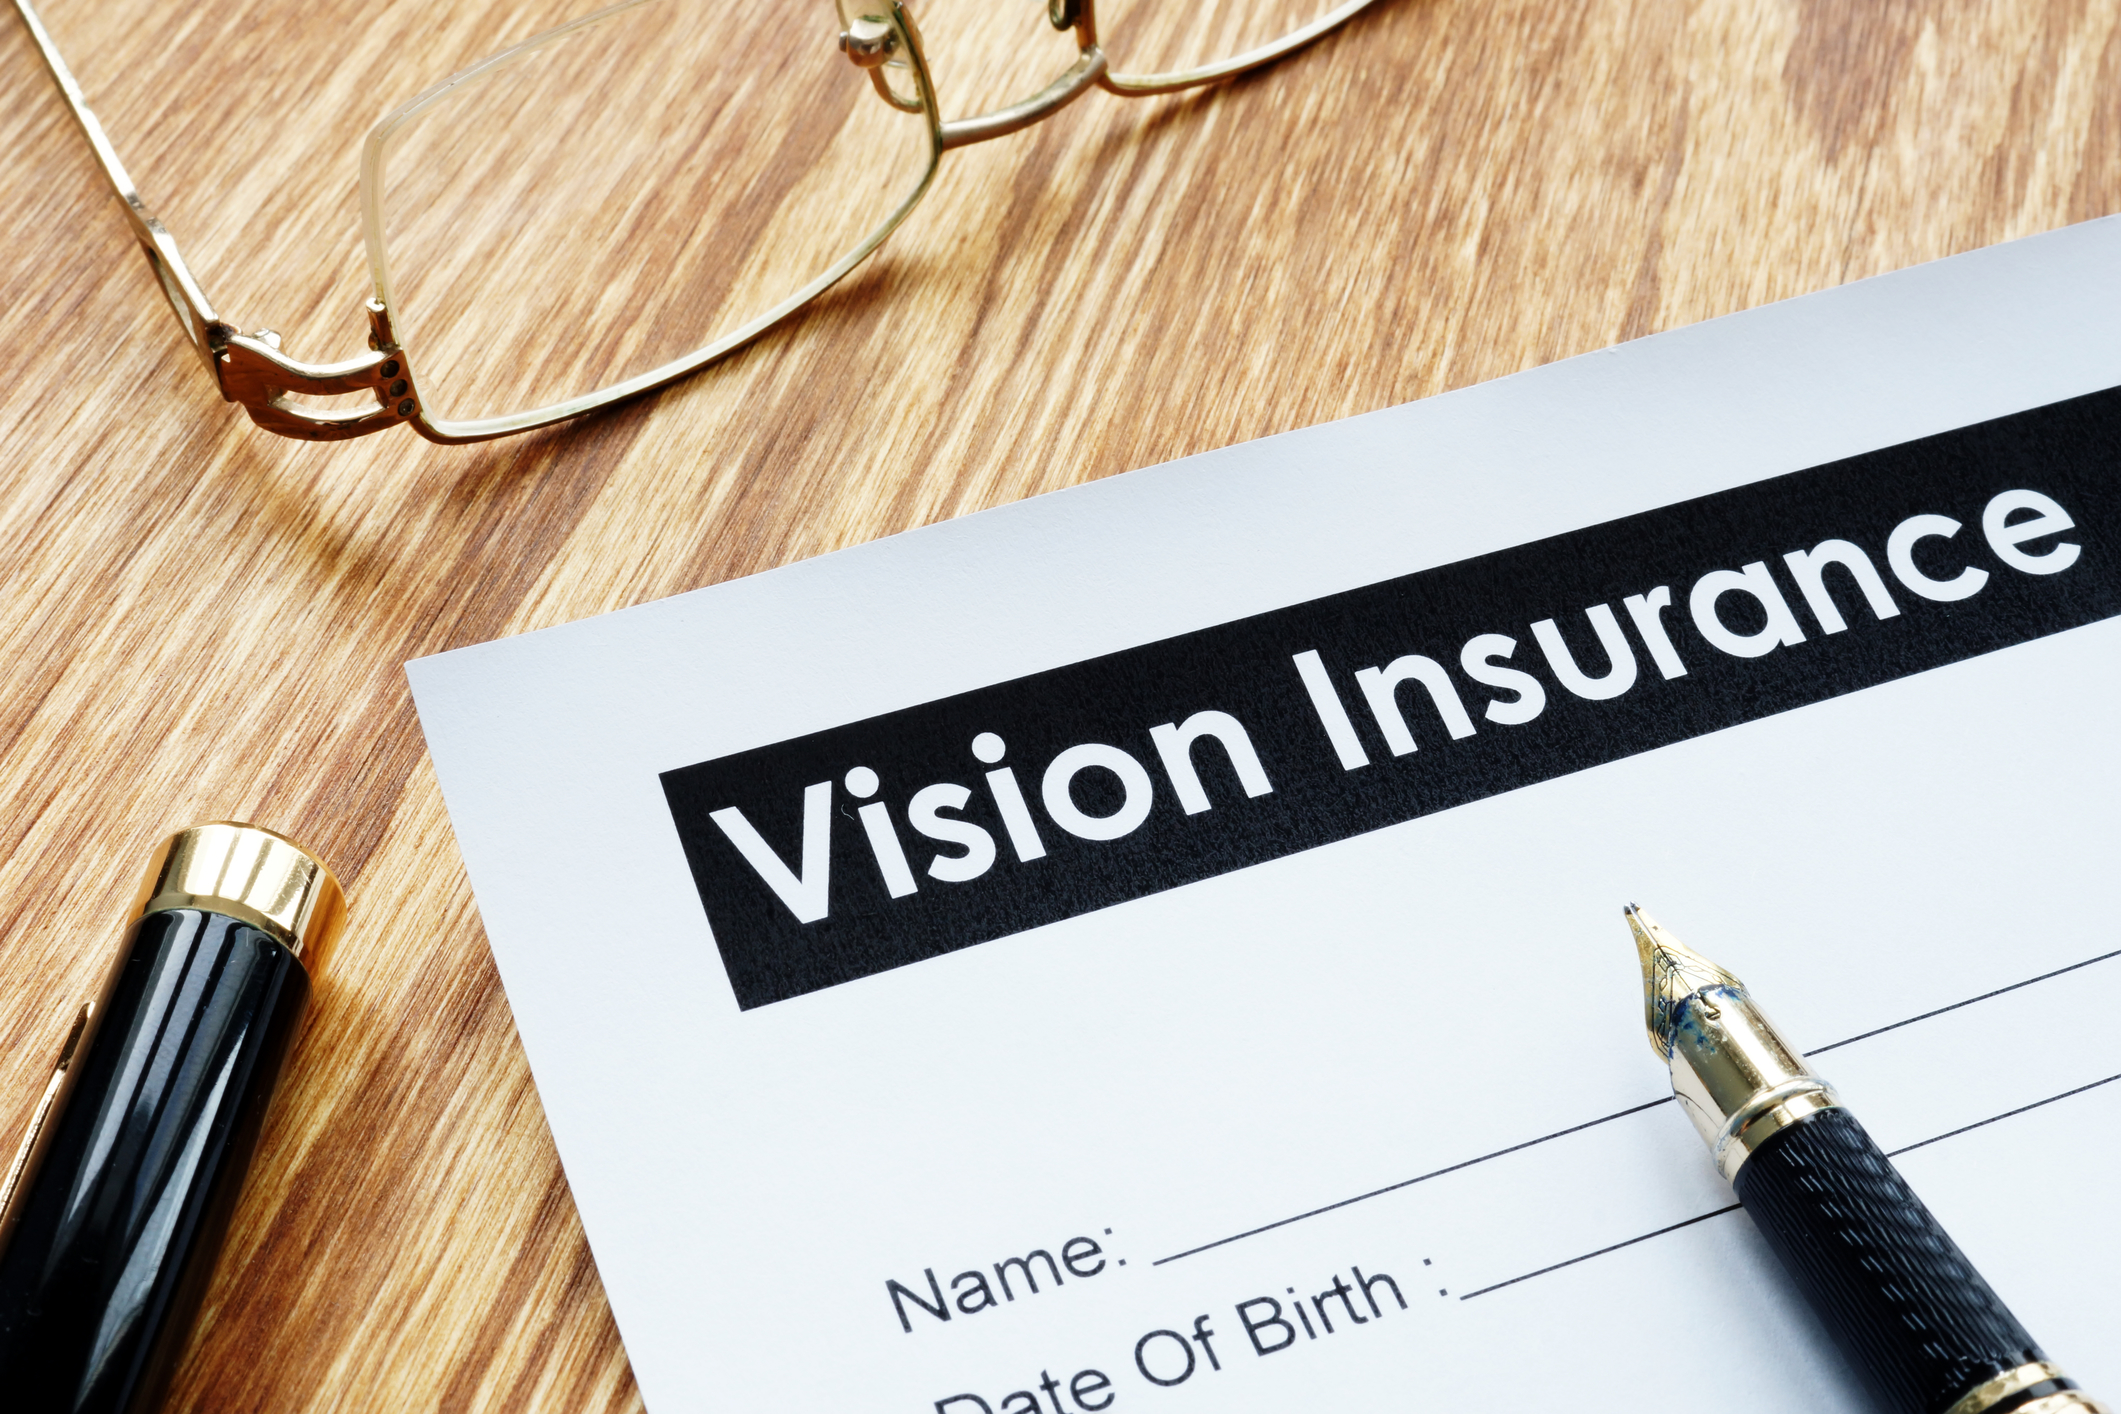 Vision Insurance application form and glasses